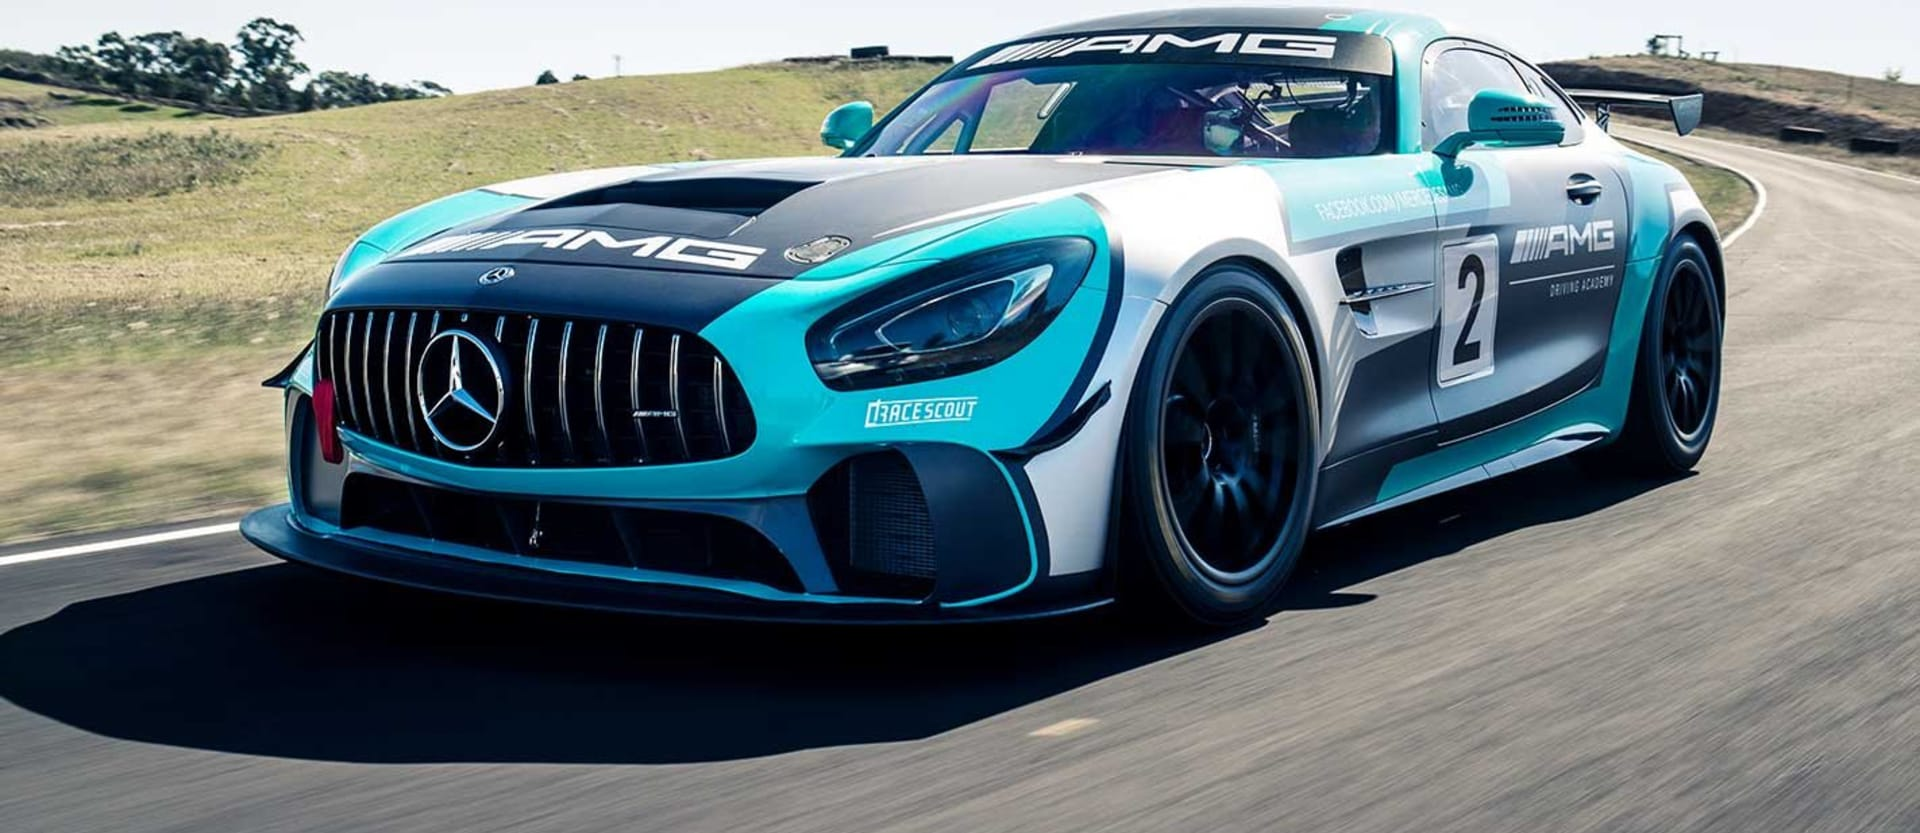 2019 Mercedes-AMG GT4 performance review